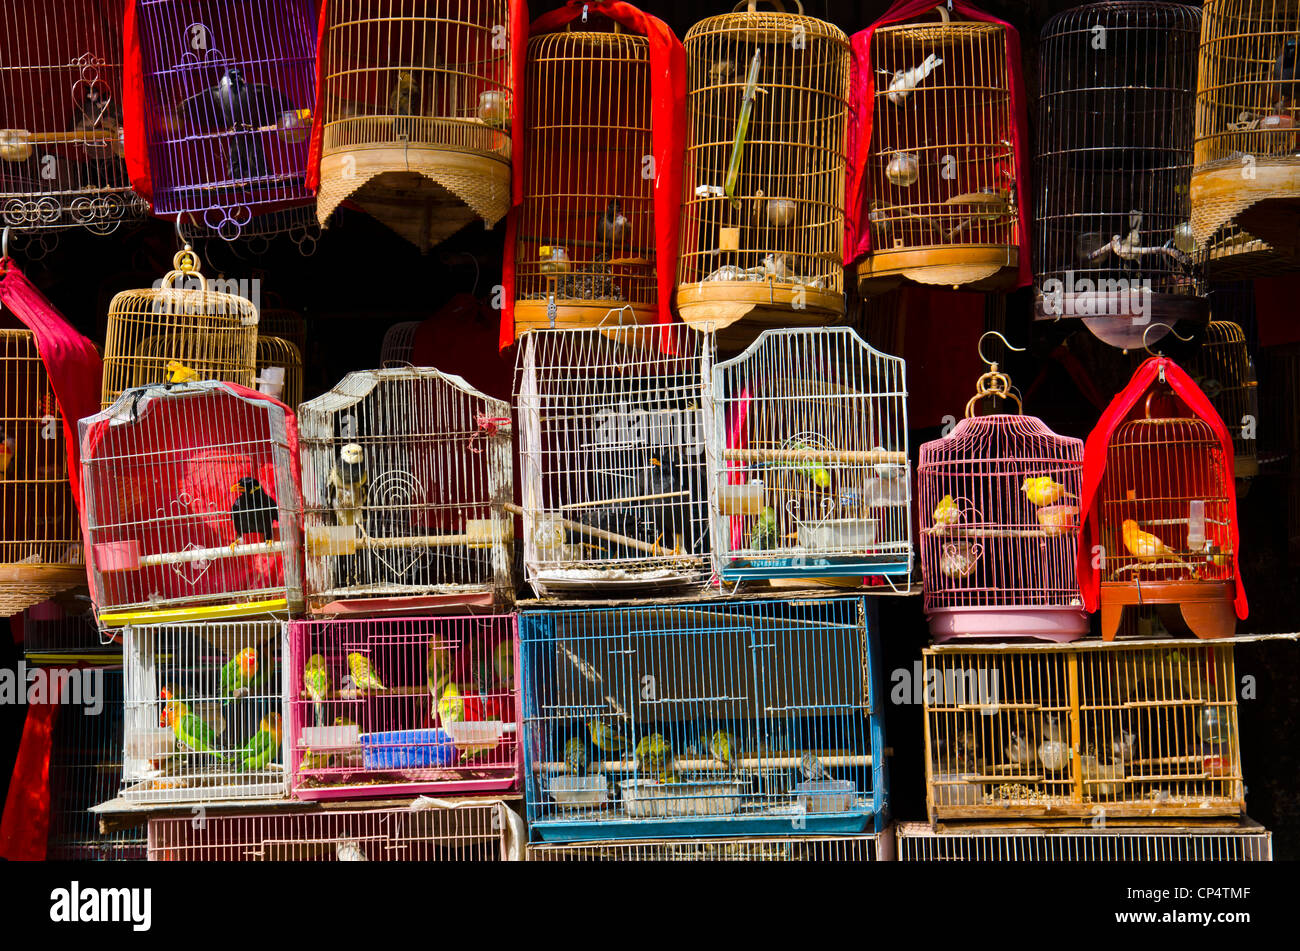 Birds cage with birds for sale - Stock Image